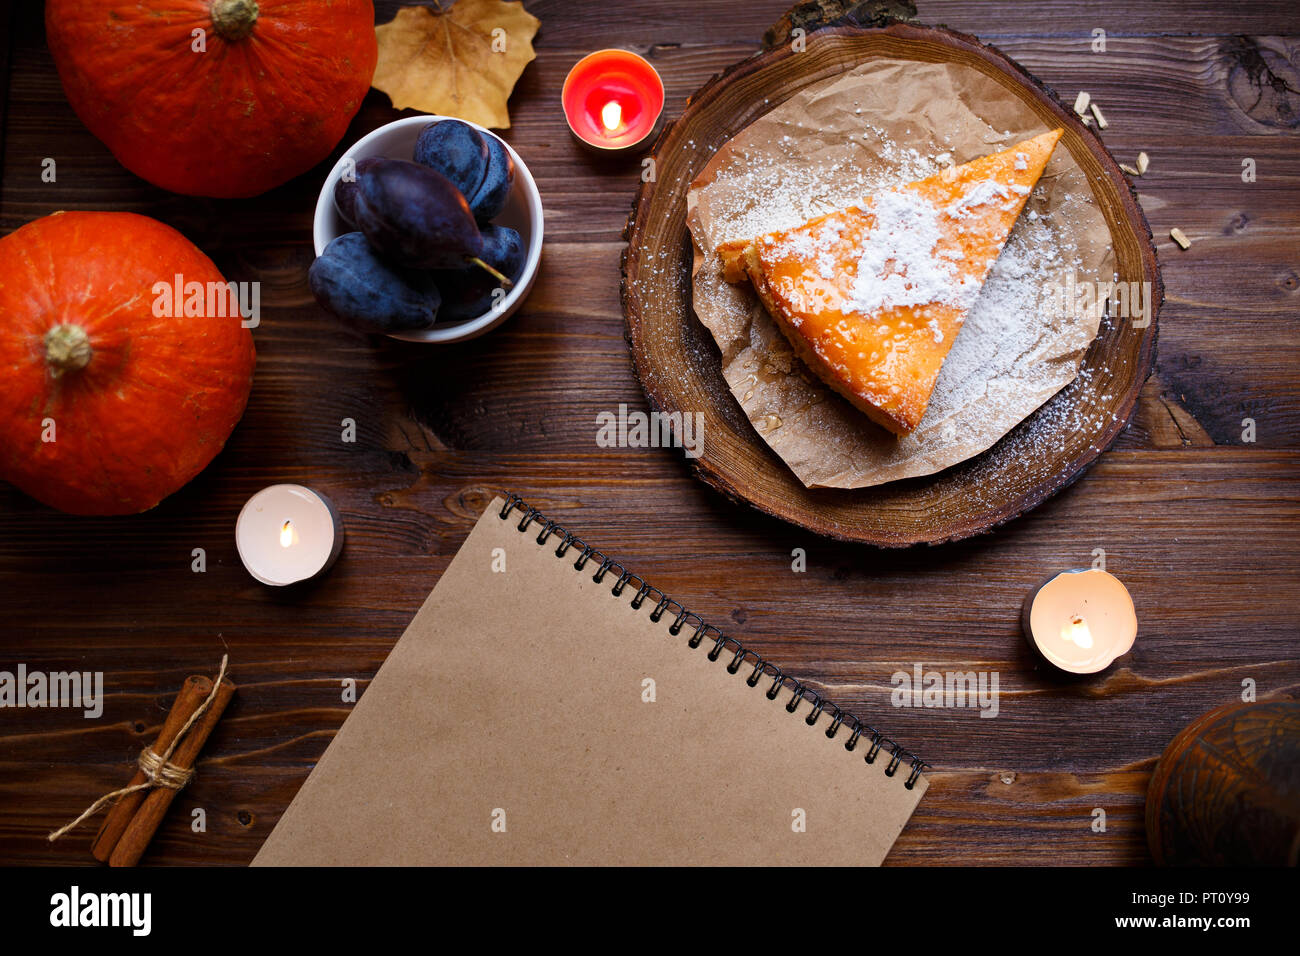 Notebook, pumpkin cheesecake, cooked at home, pumpkin, foliage, table lamp, vanilla on a wooden dark table. Autumn and winter cozy concept. - Stock Image